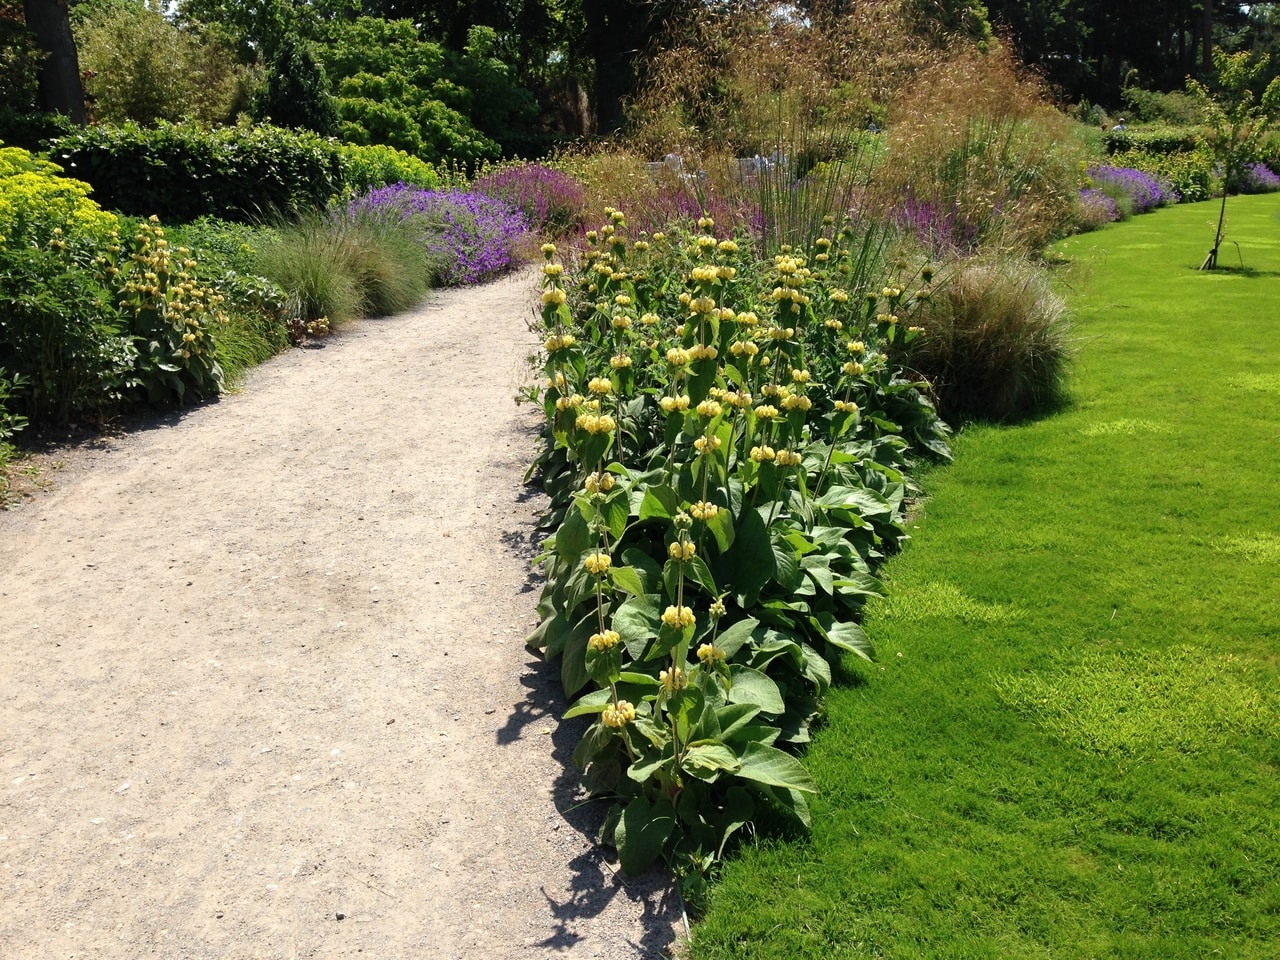 Phlomis russeliana in full bloom colonising another corner bed very well